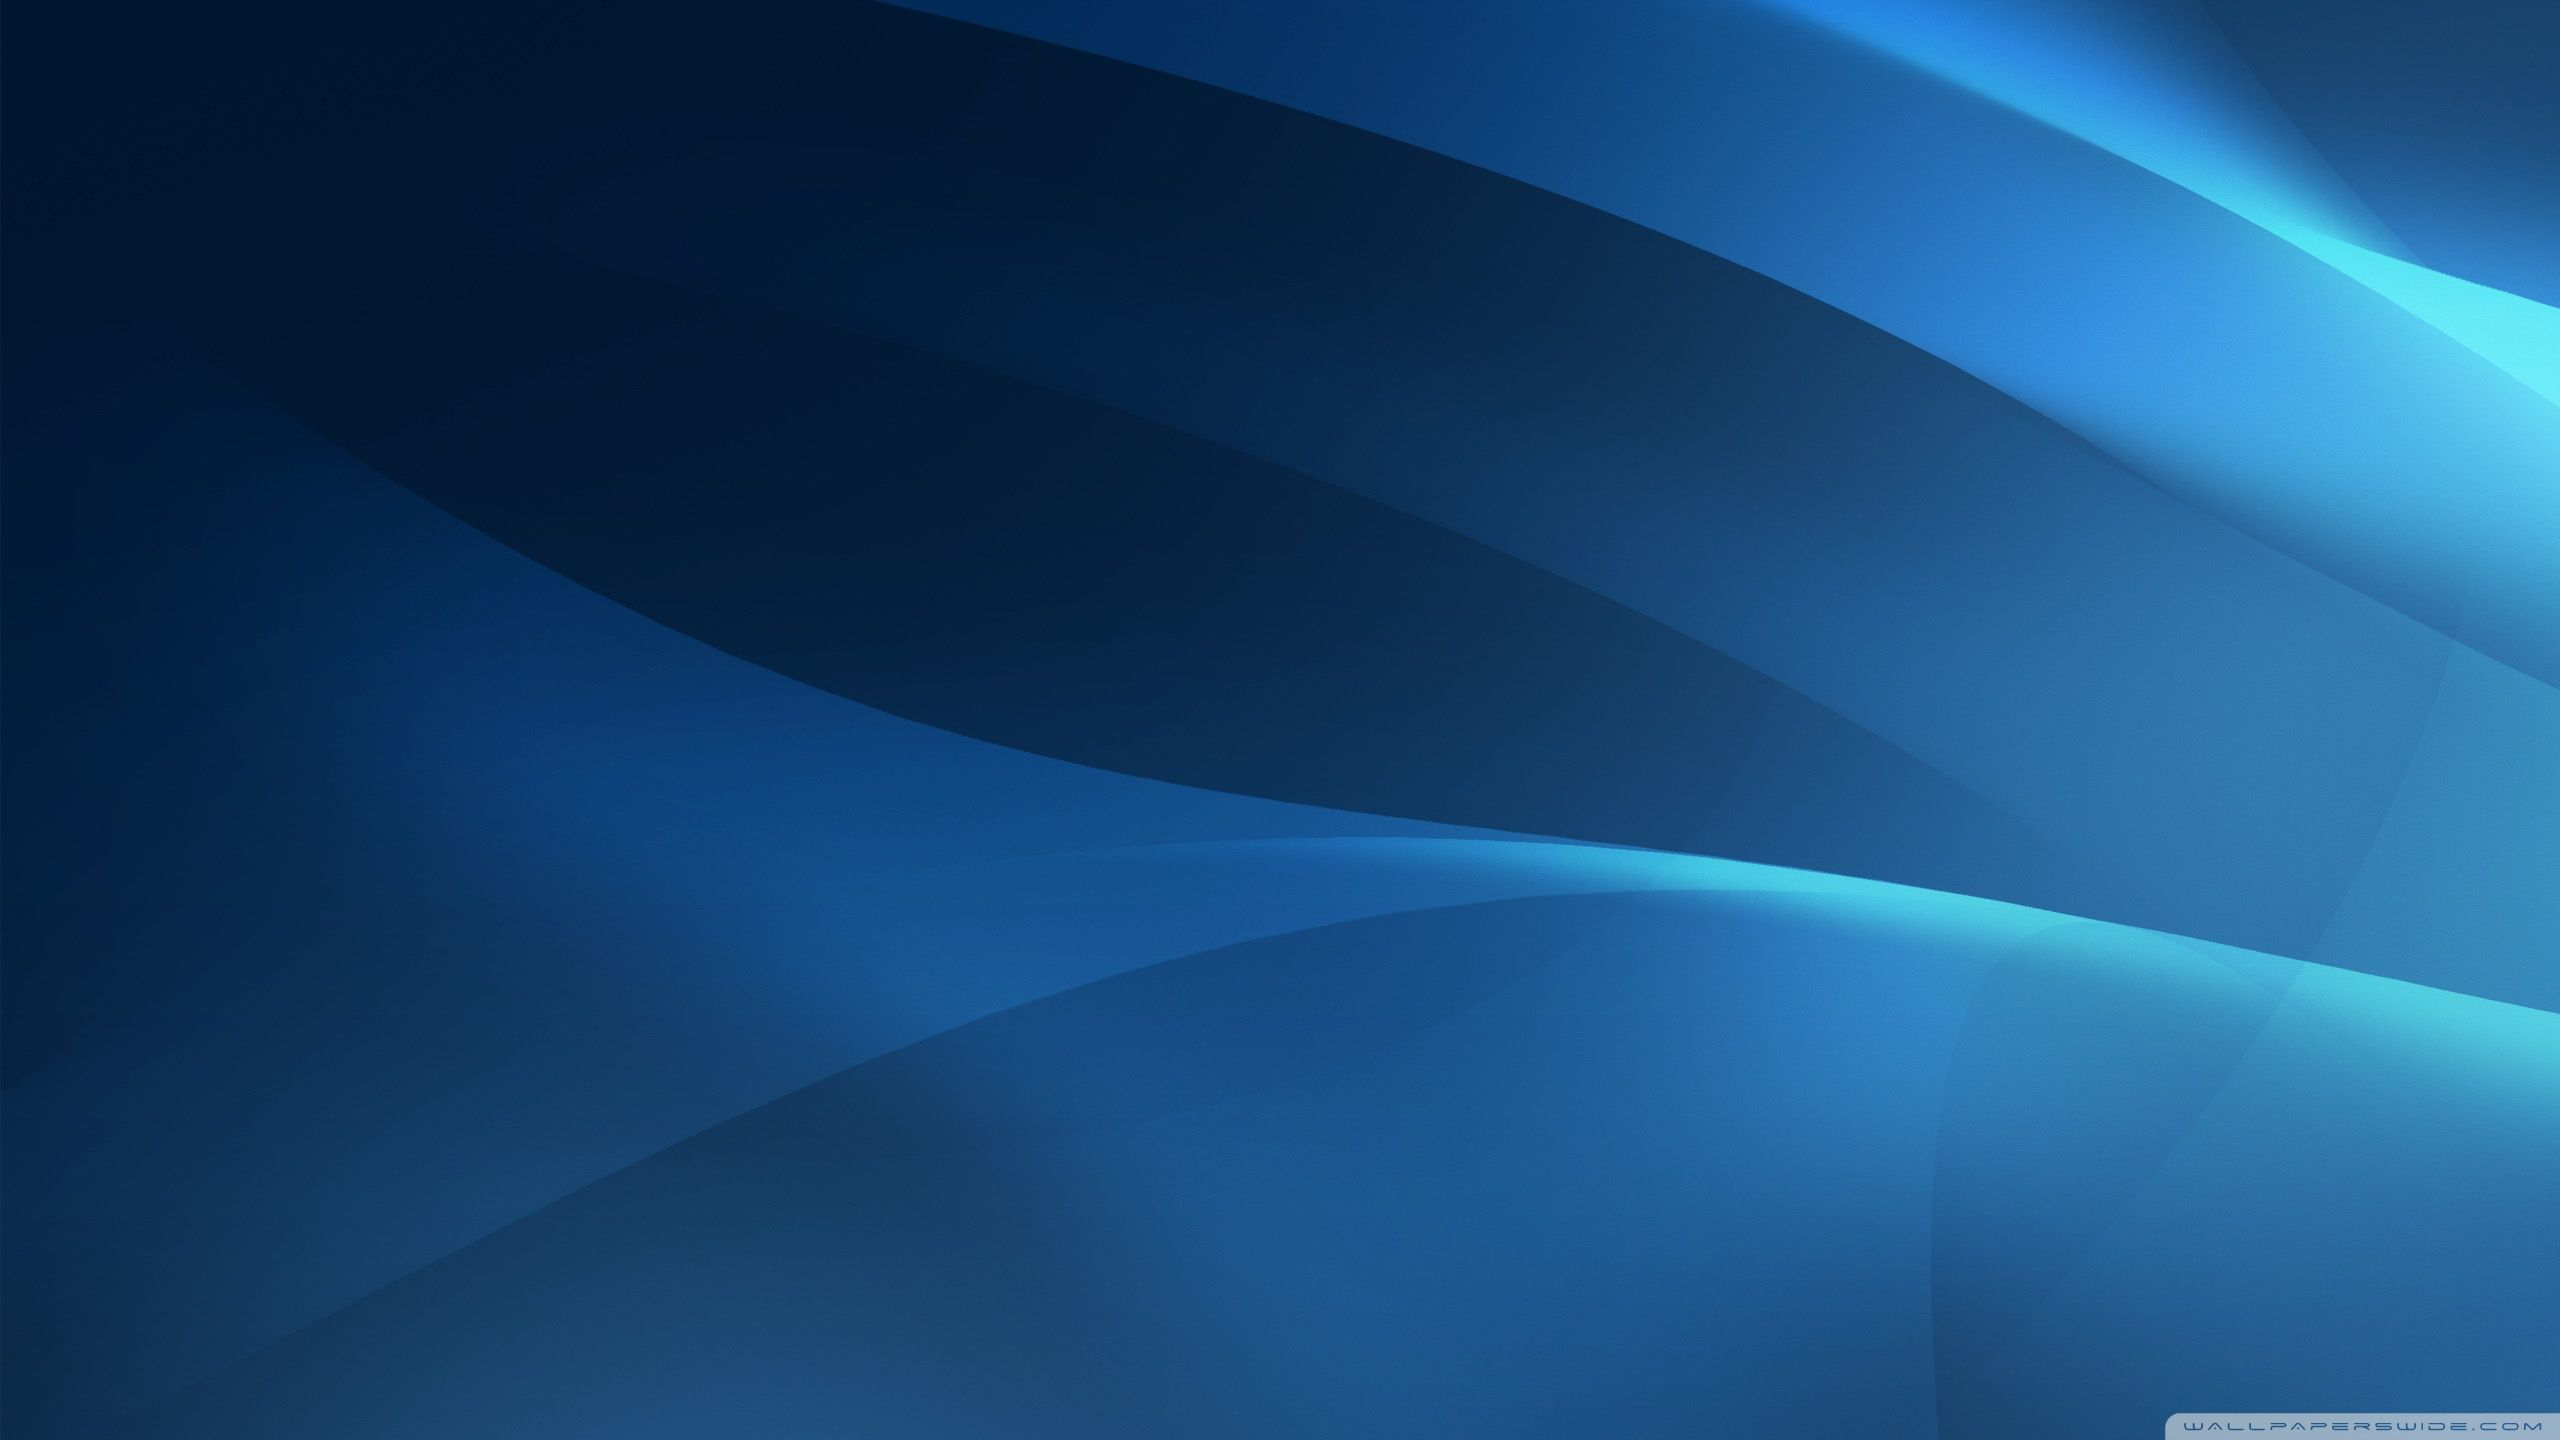 Hd Wallpaper Abstract Blue Hd 1080p 12 Hd Wallpapers Blue Abstract Abstract Wallpaper Backgrounds Blue Wallpapers